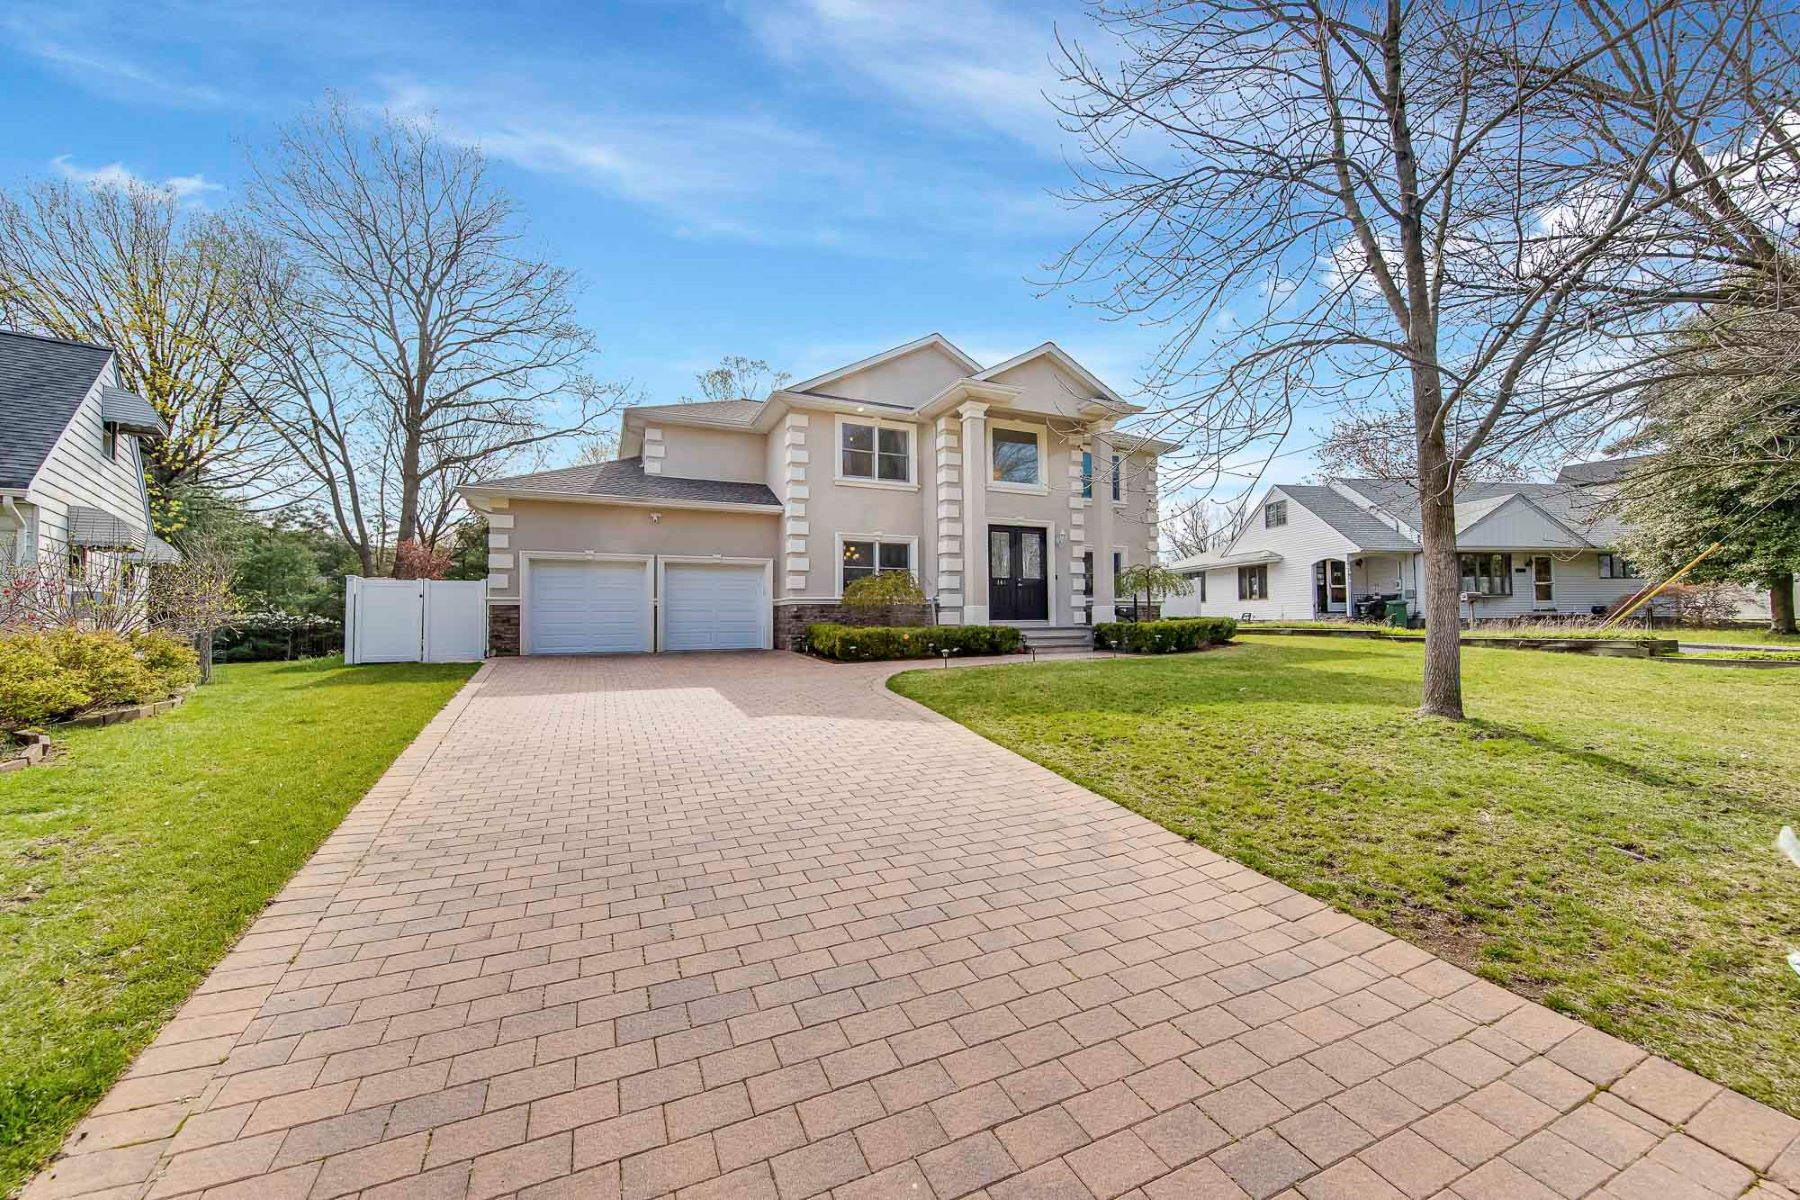 Single Family Homes for Sale at Location! Location! 146 Garden Ave, Paramus, New Jersey 07652 United States